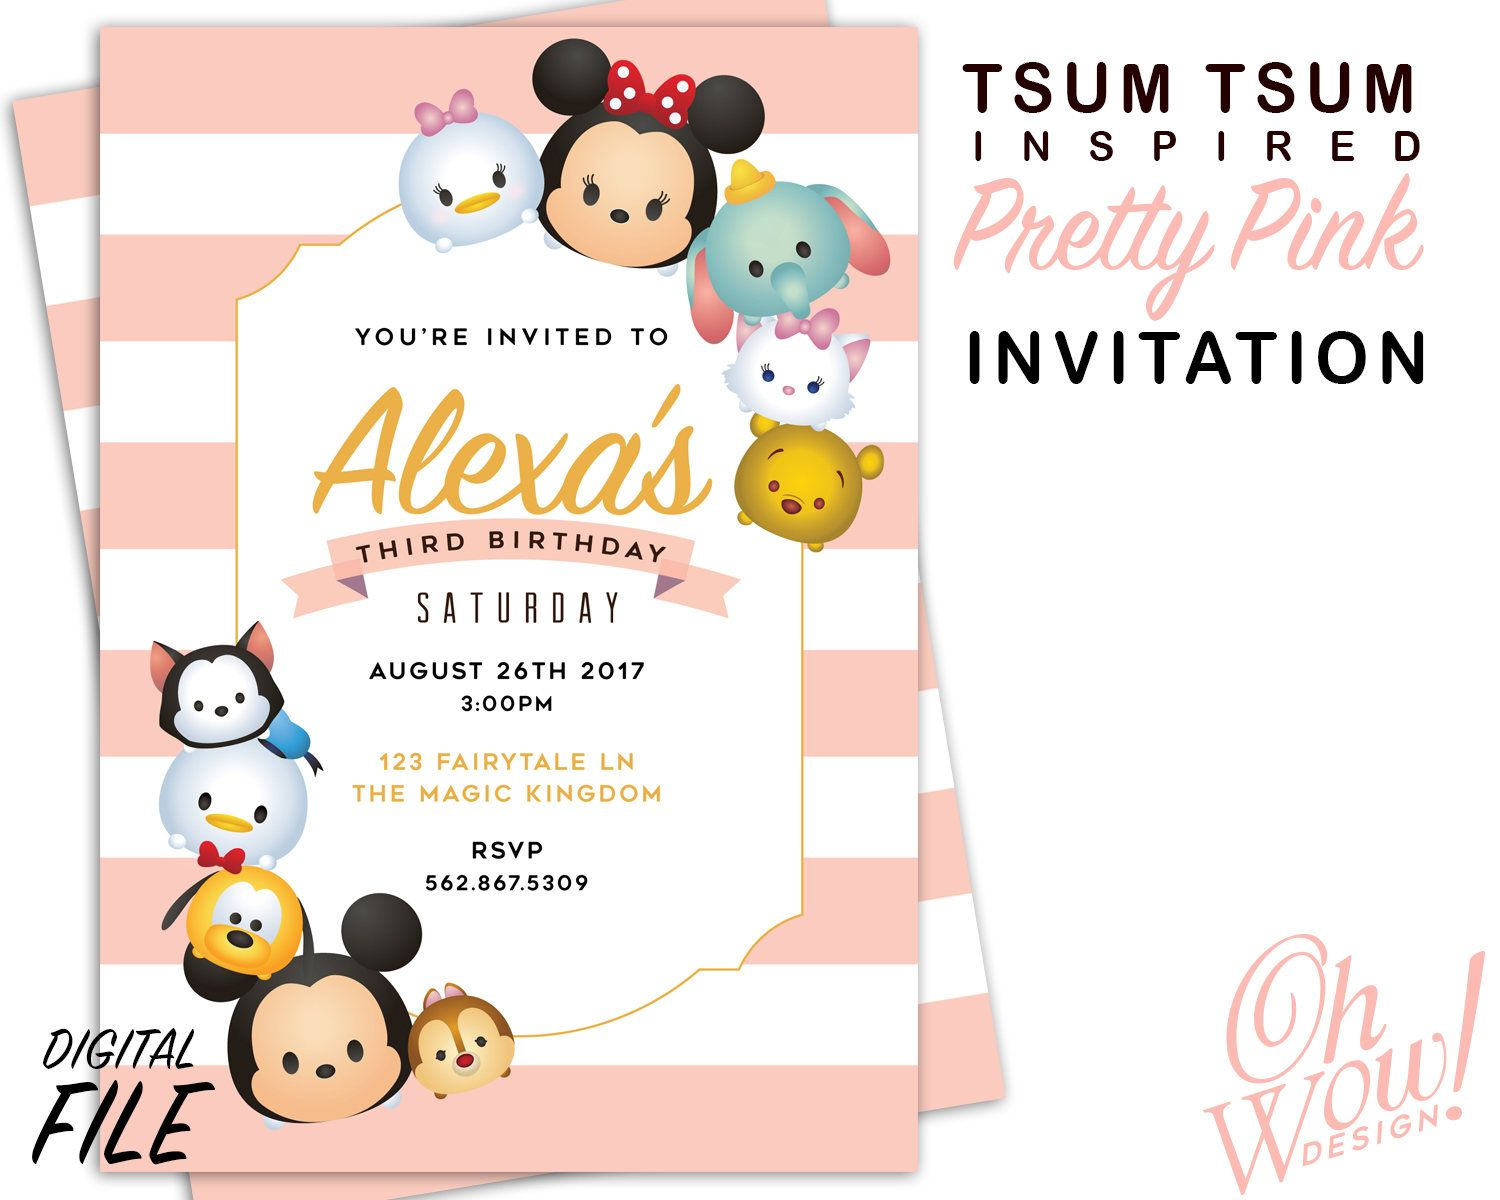 Tsum Tsum Inspired Party Invitation | Party invitations